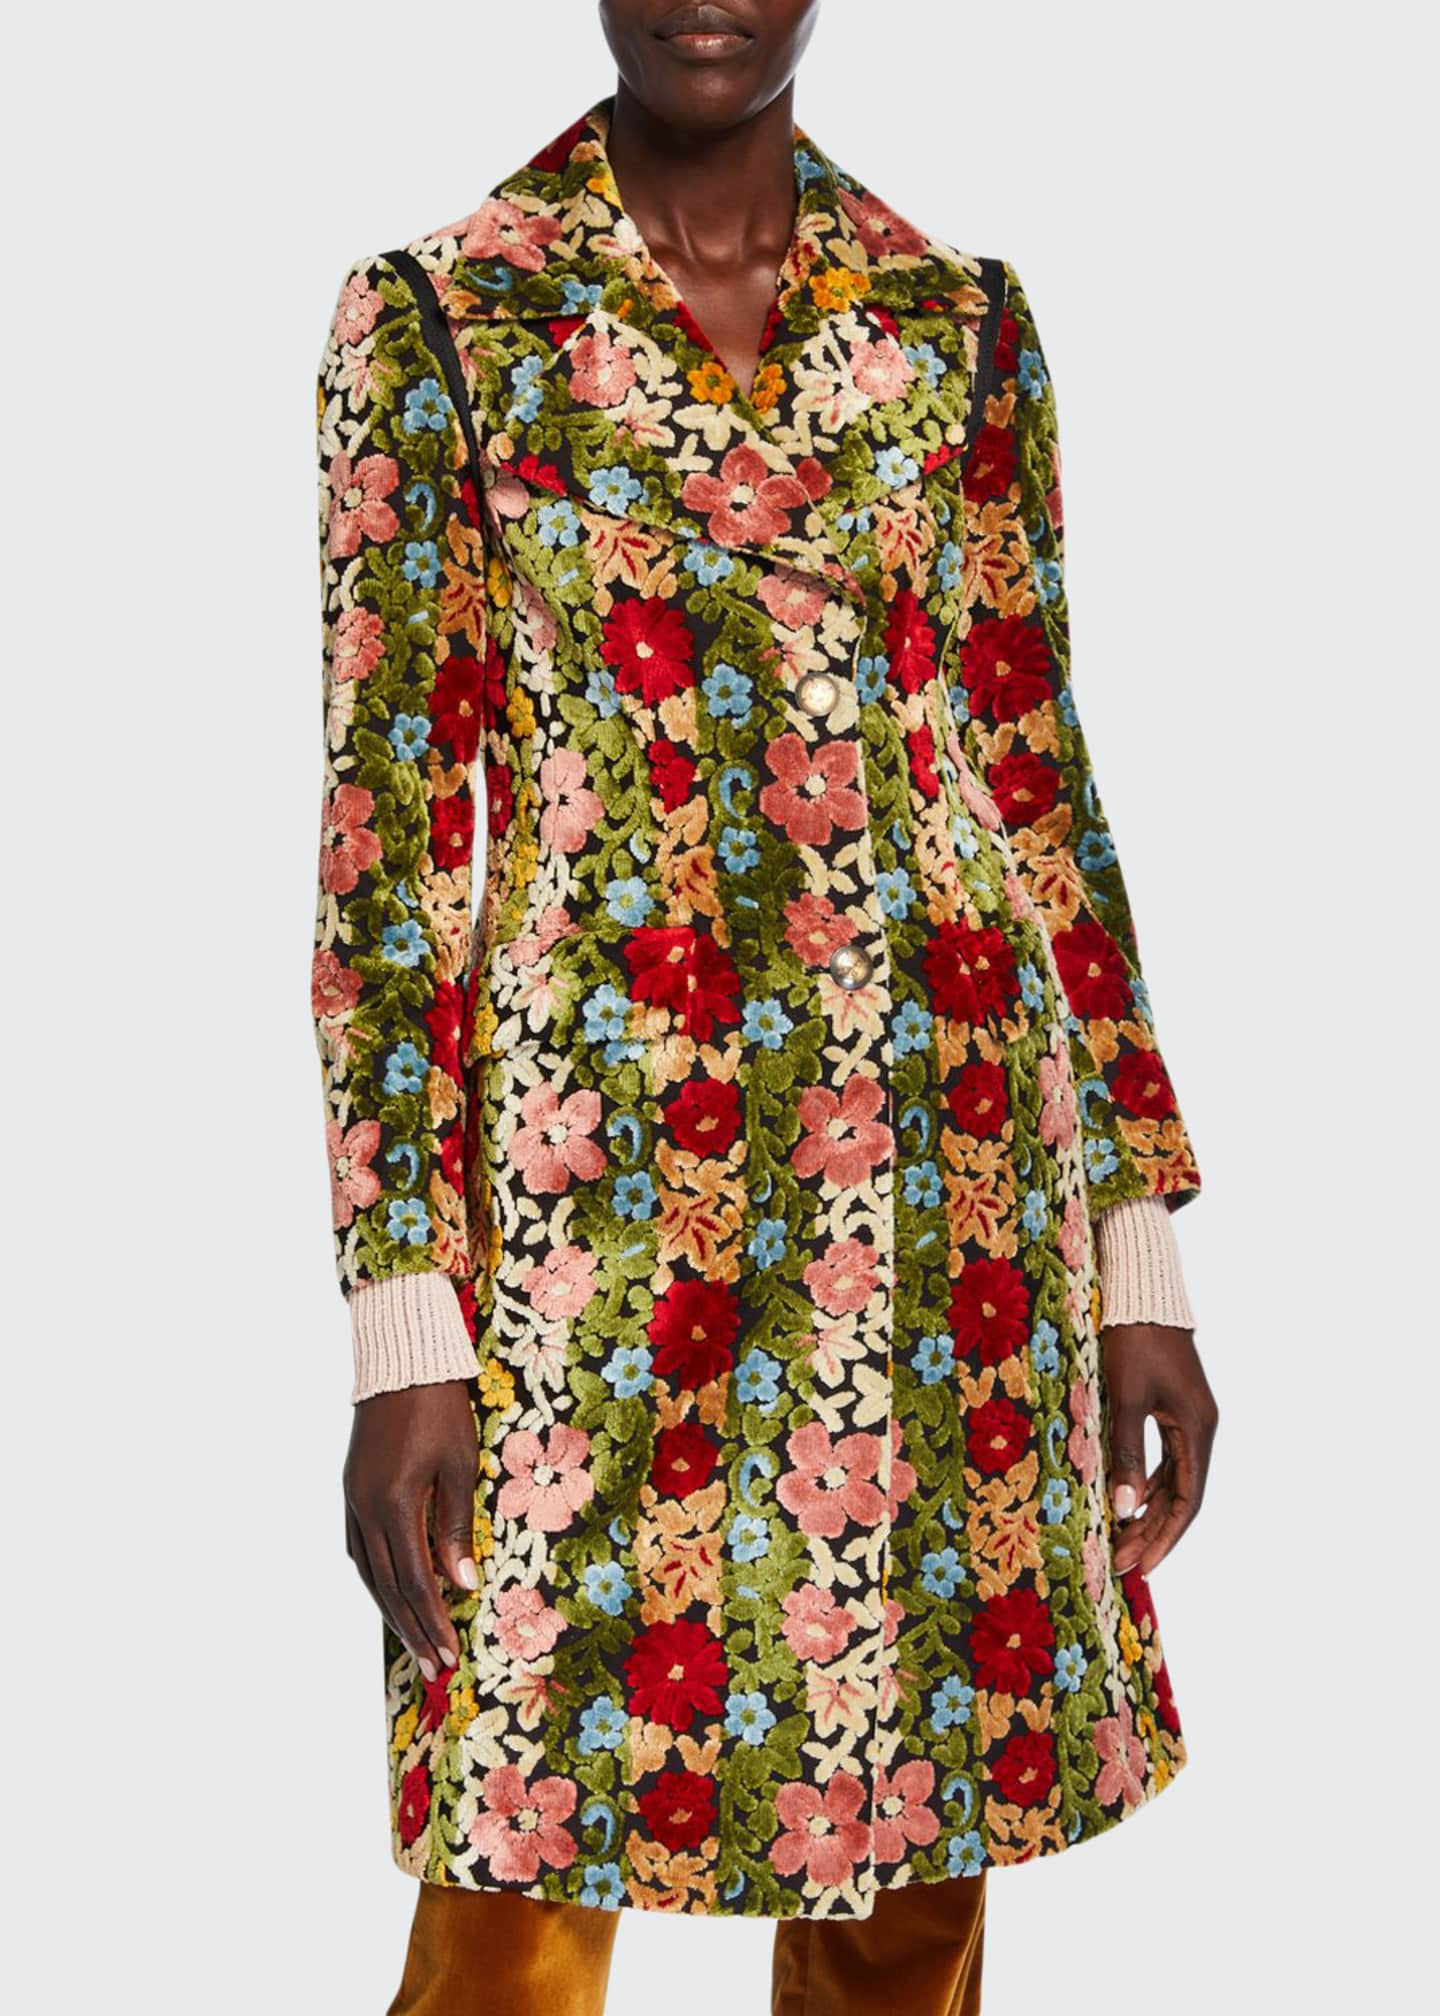 Etro Carpet Floral Embroidered Coat